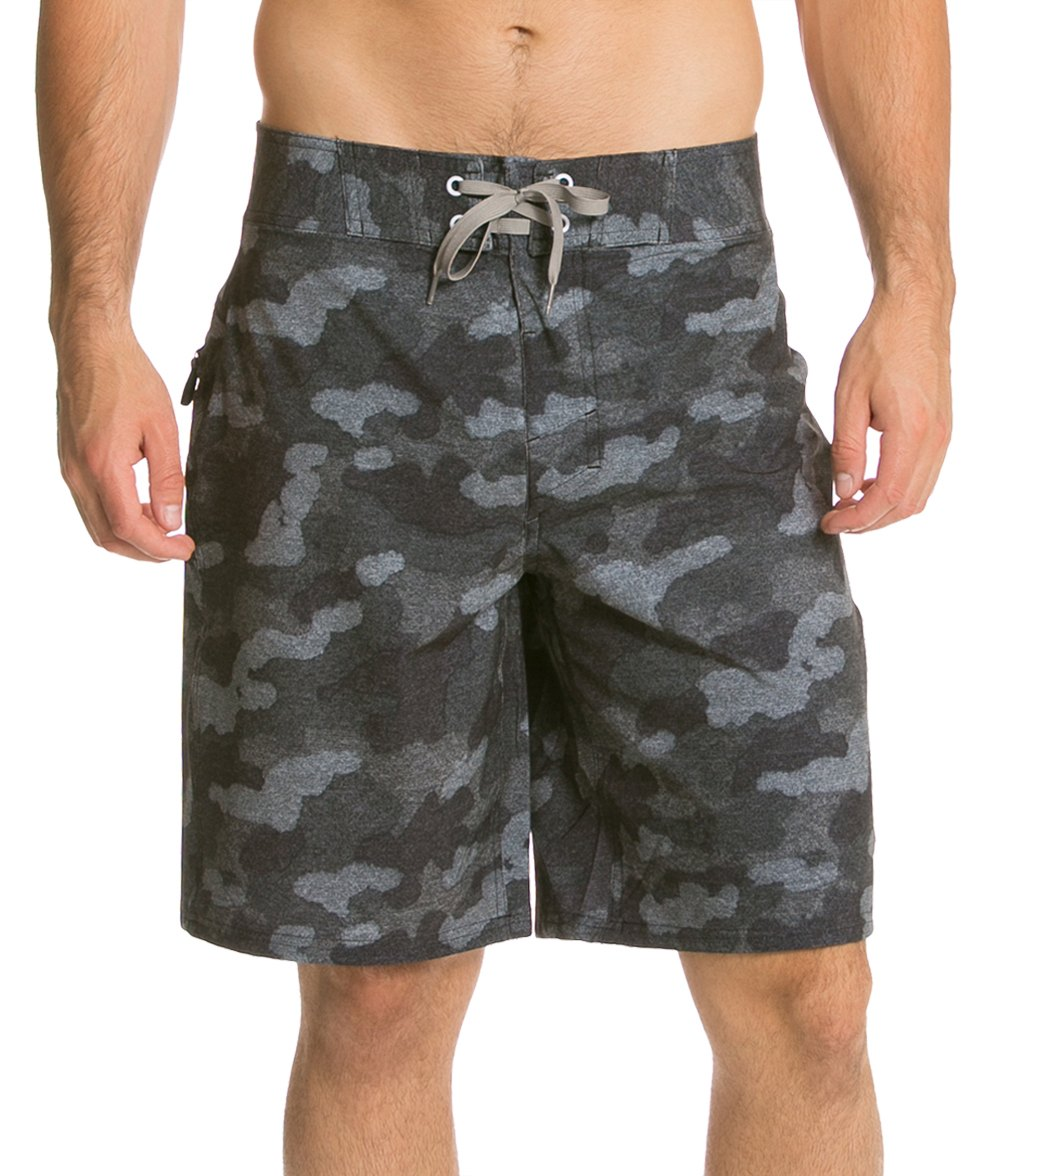 d22b1ee64438b Under Armour Men s Passage Boardshort at SwimOutlet.com - Free Shipping